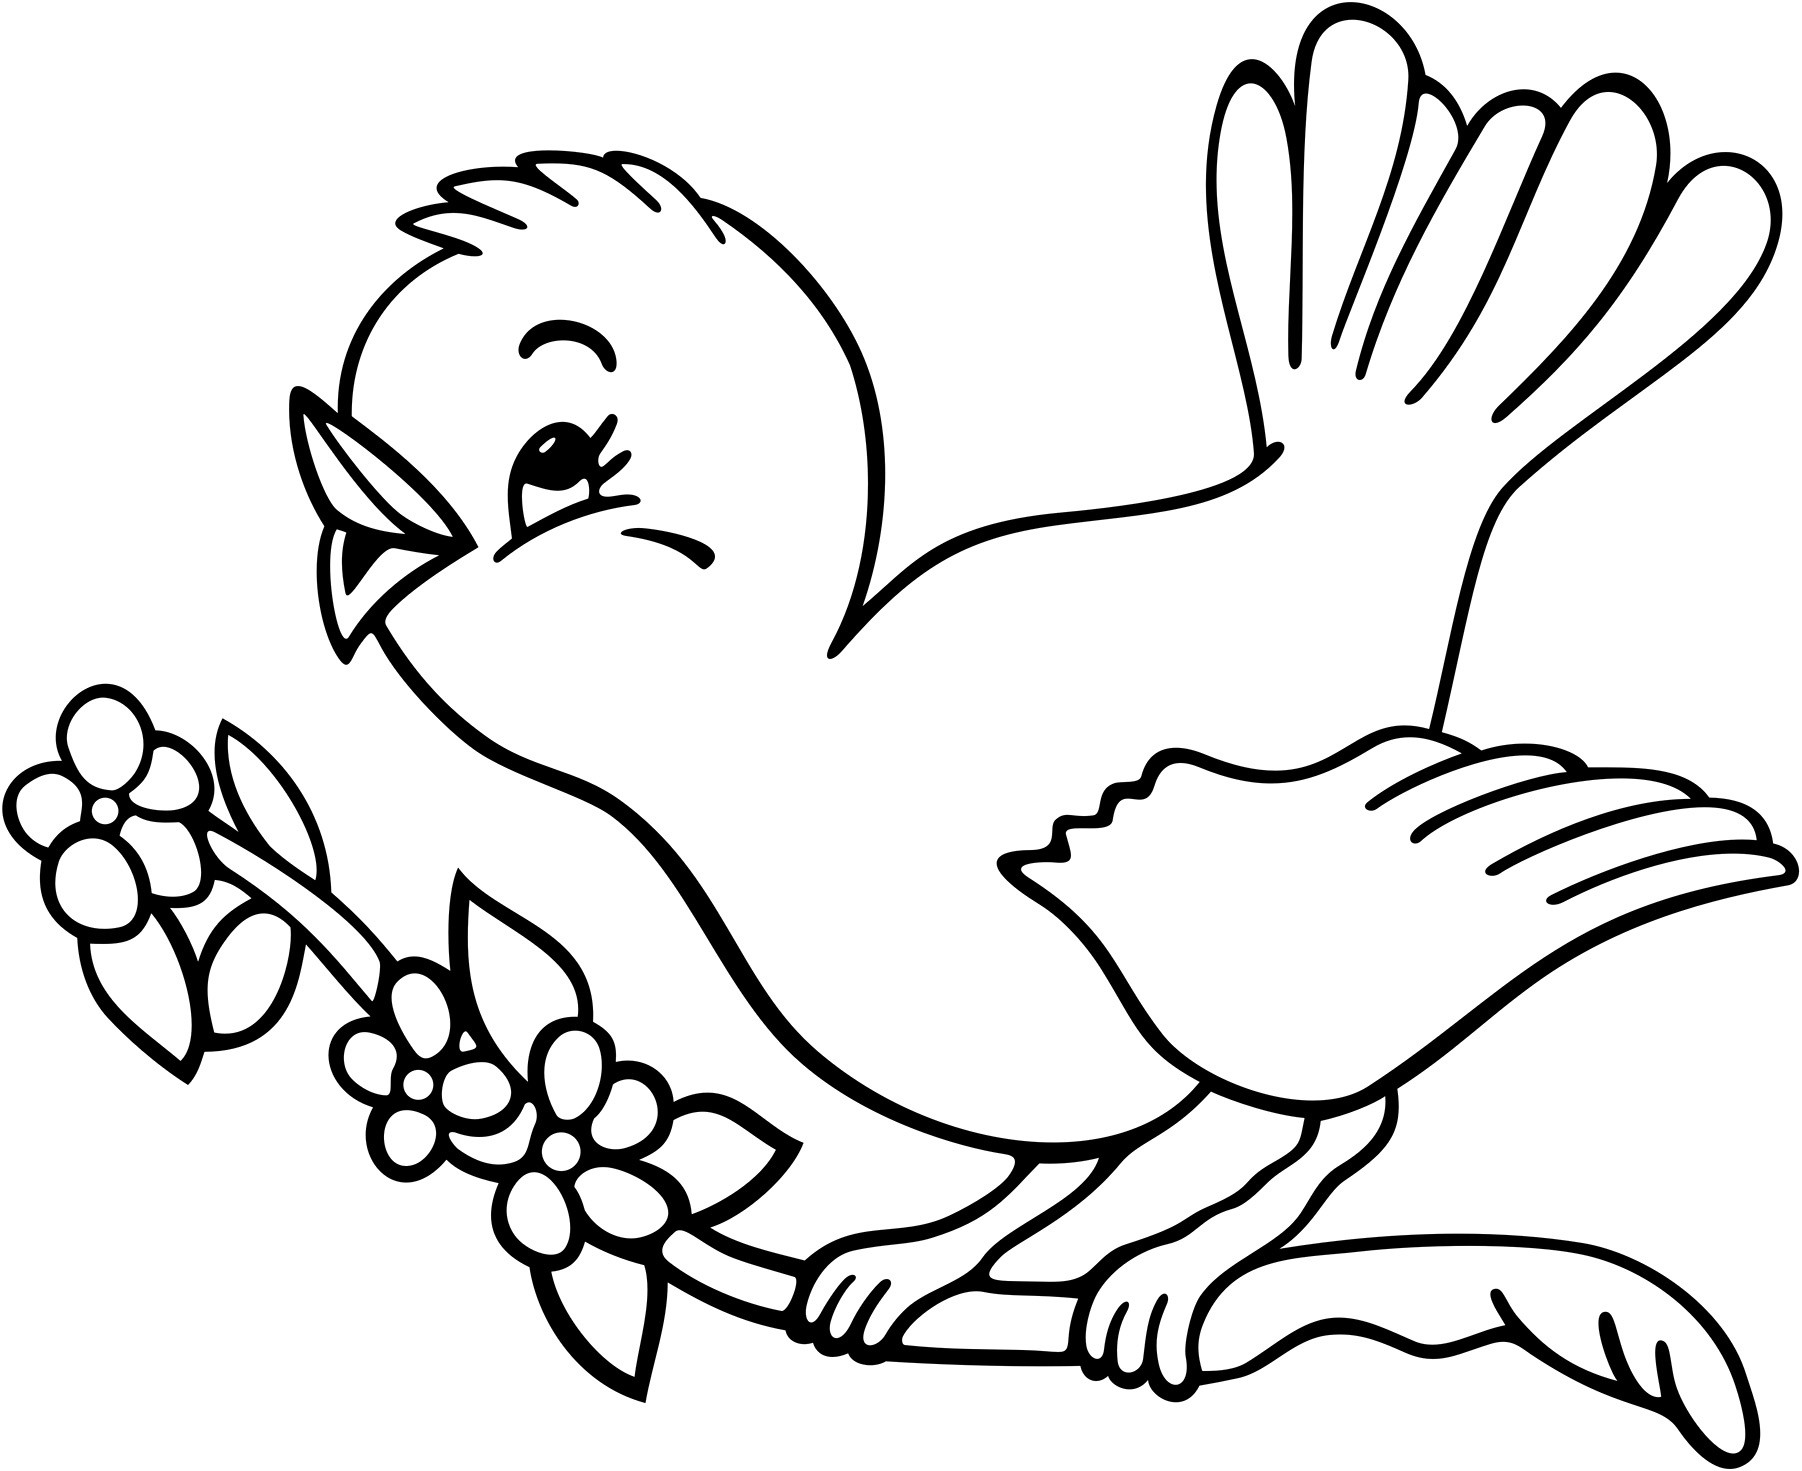 Bird Coloring Pages For Kids At Getdrawings